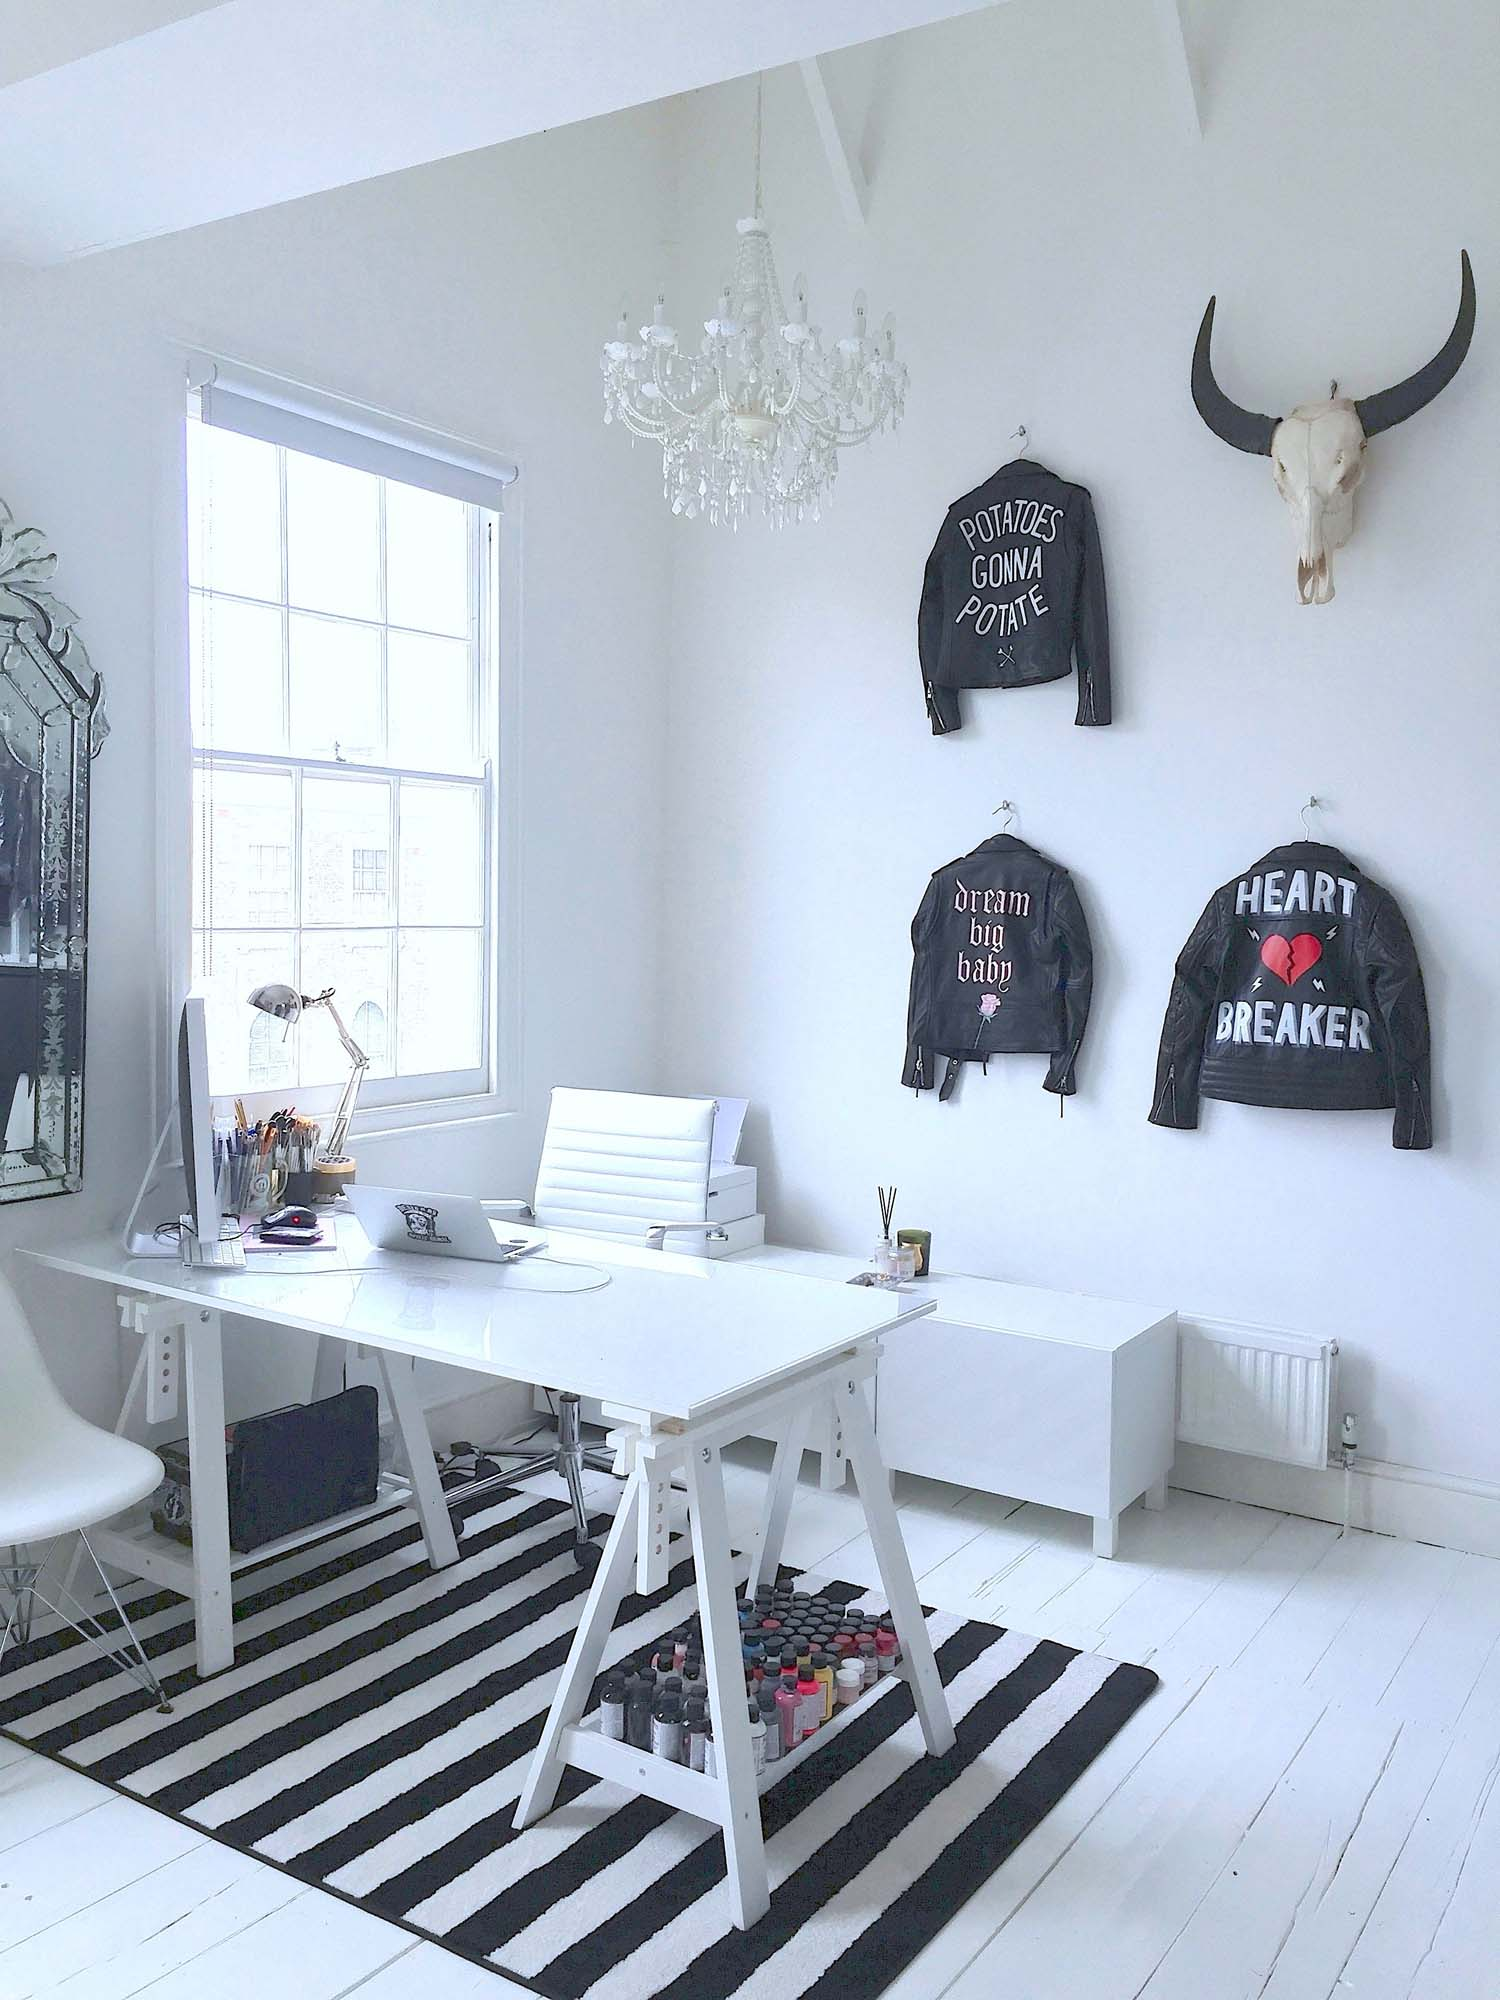 Laurie's top floor home studio was created by knocking together two bedrooms